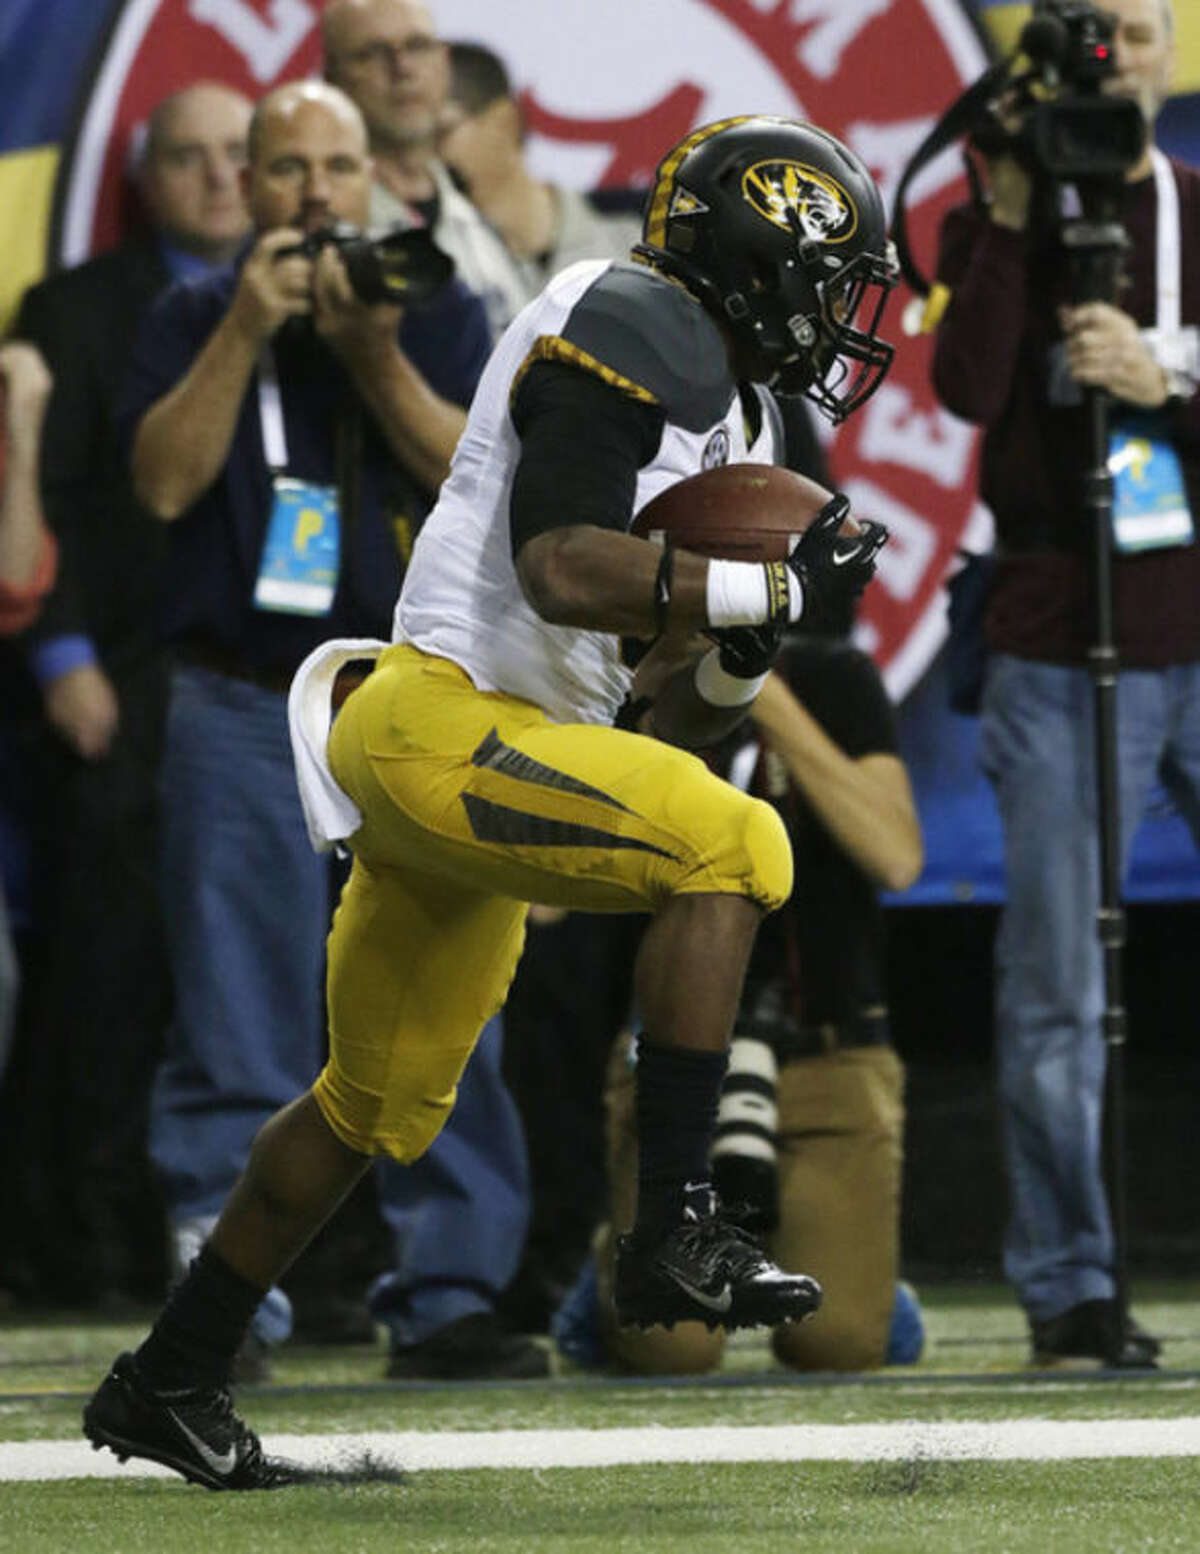 Missouri running back Marcus Murphy (6) makes a catch in the end zone against Auburn during the second half of the Southeastern Conference NCAA football championship game, Saturday, Dec. 7, 2013, in Atlanta. (AP Photo/Dave Martin)